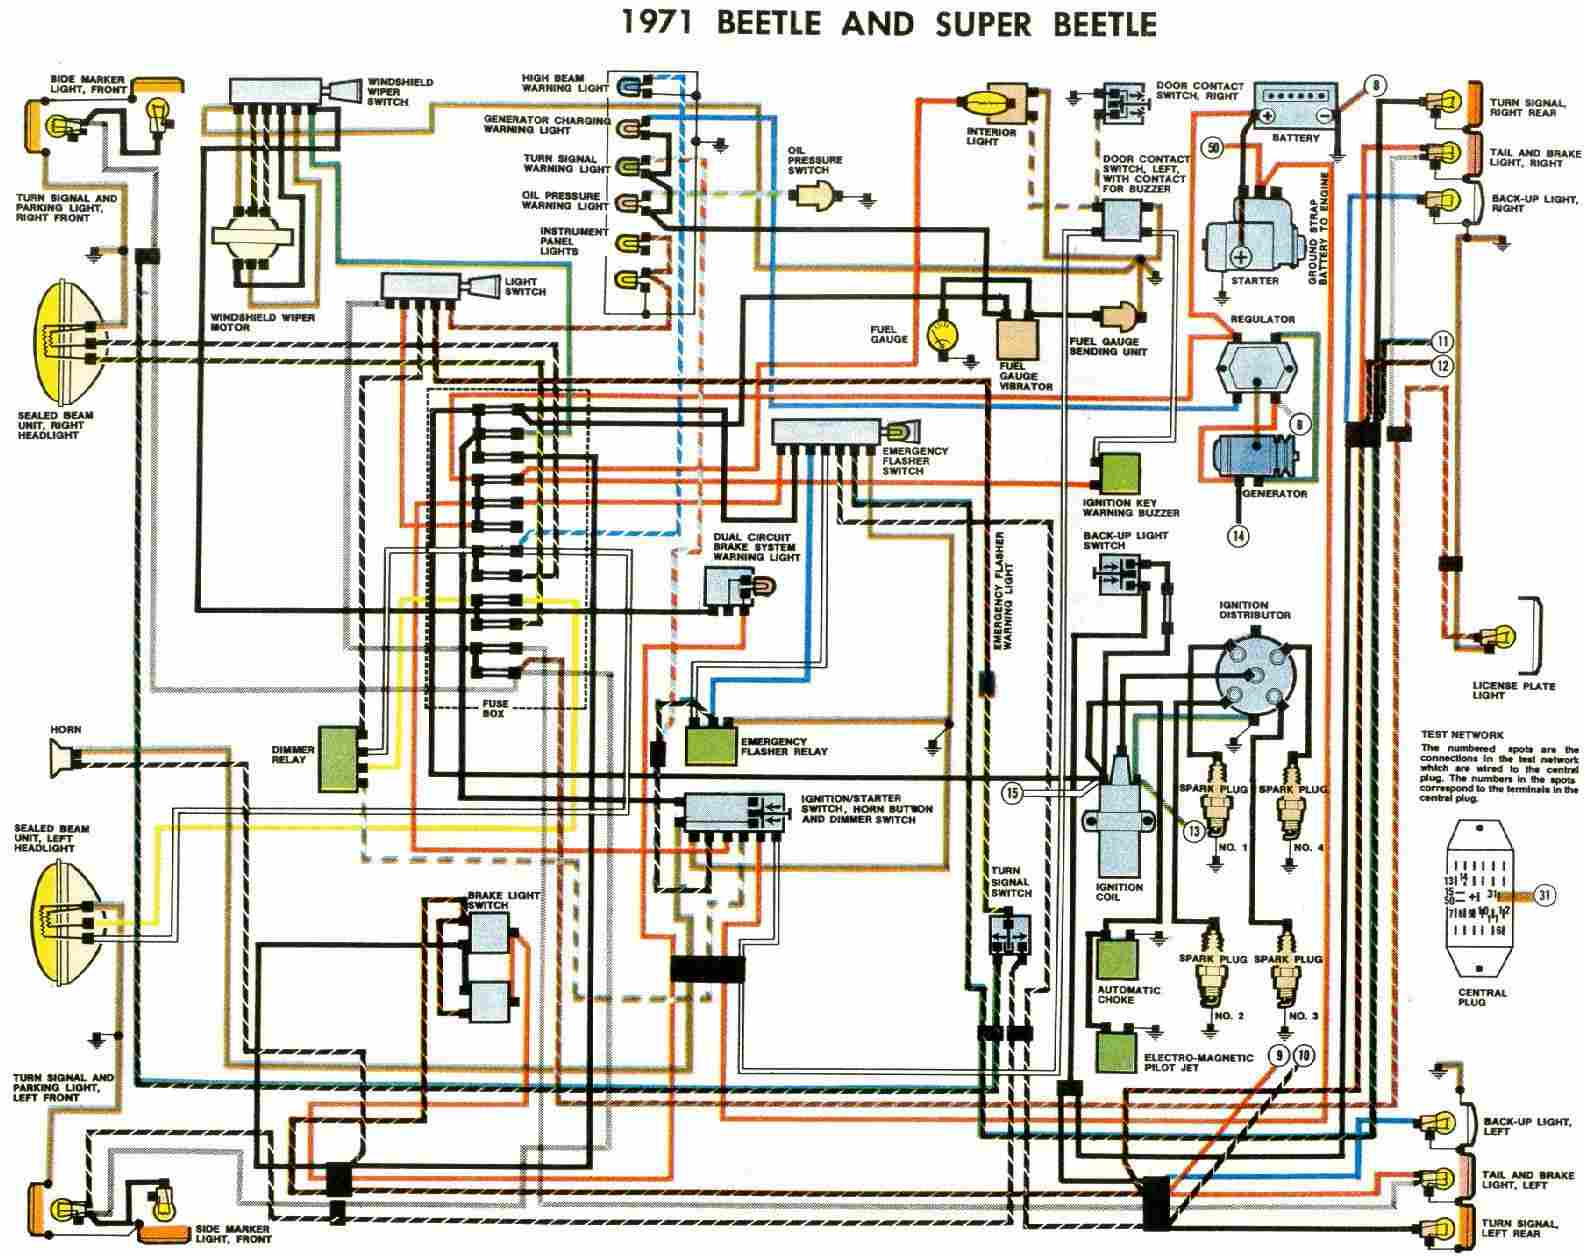 Vw Beetle Wiring Diagram : Vw beetle and super electrical wiring diagram